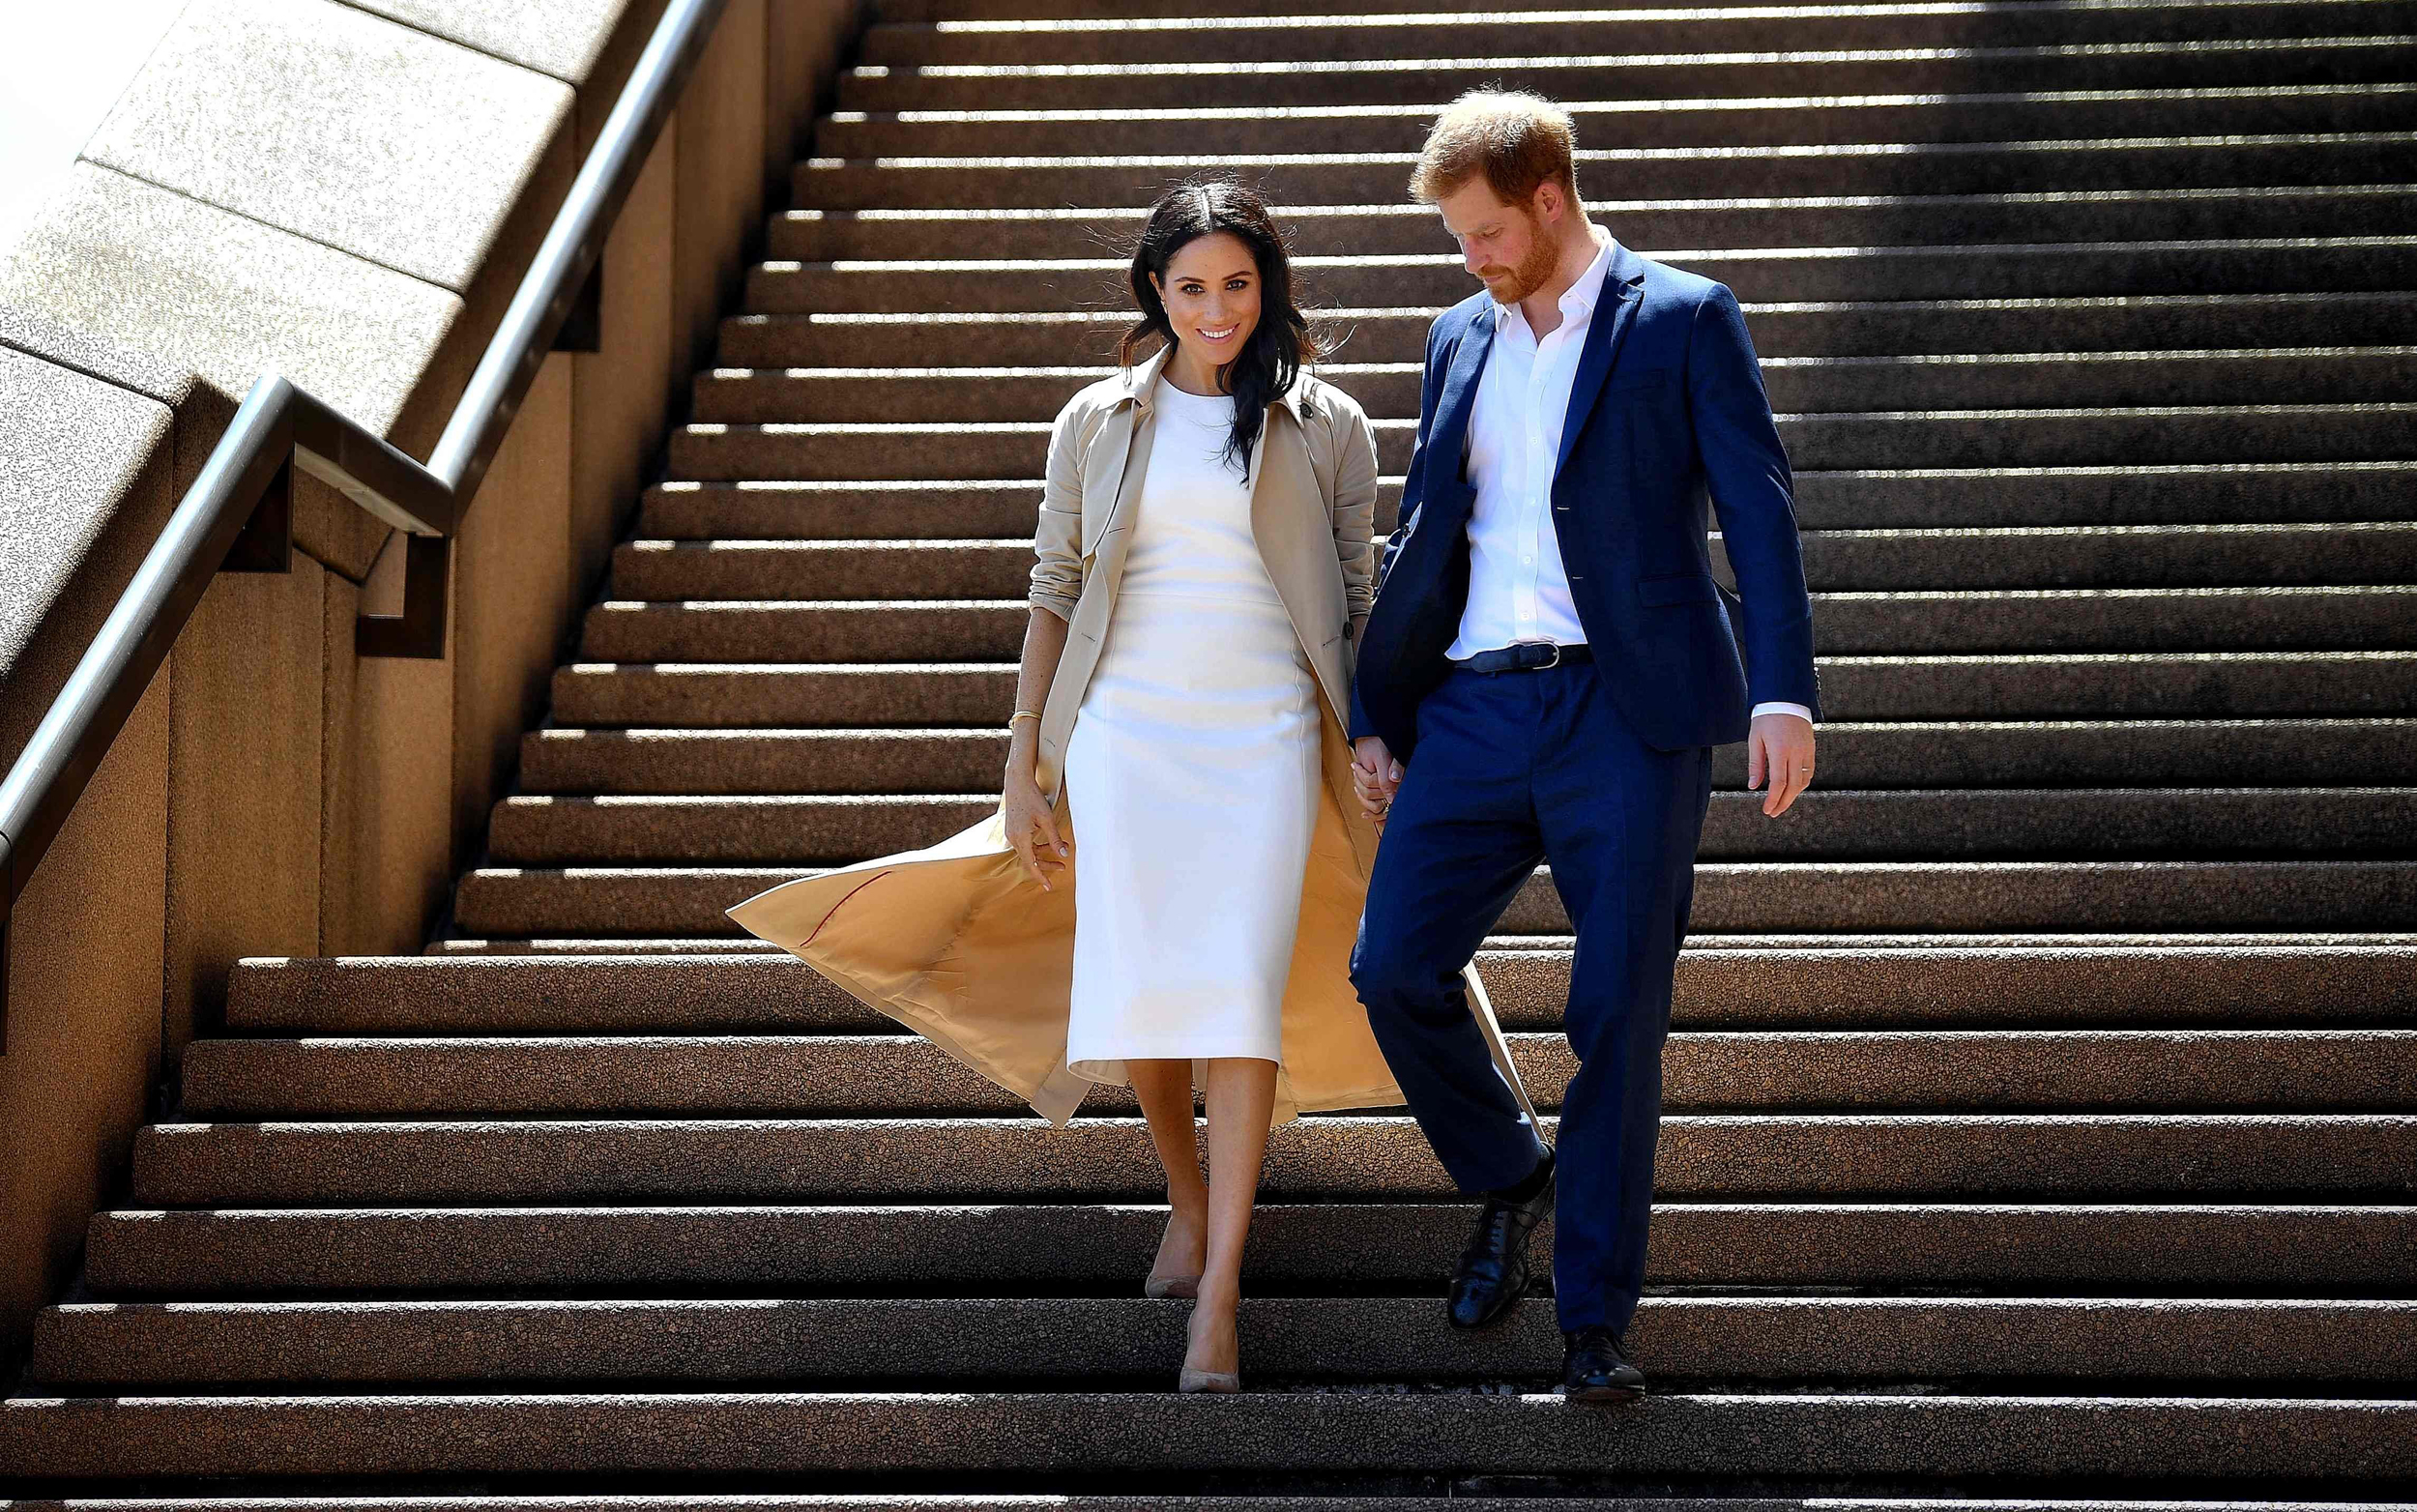 meghan markle and prince harry are having a royal baby but only one of them will endure being pregnant in public https www nbcnews com think opinion meghan markle prince harry are having royal baby only one ncna920501